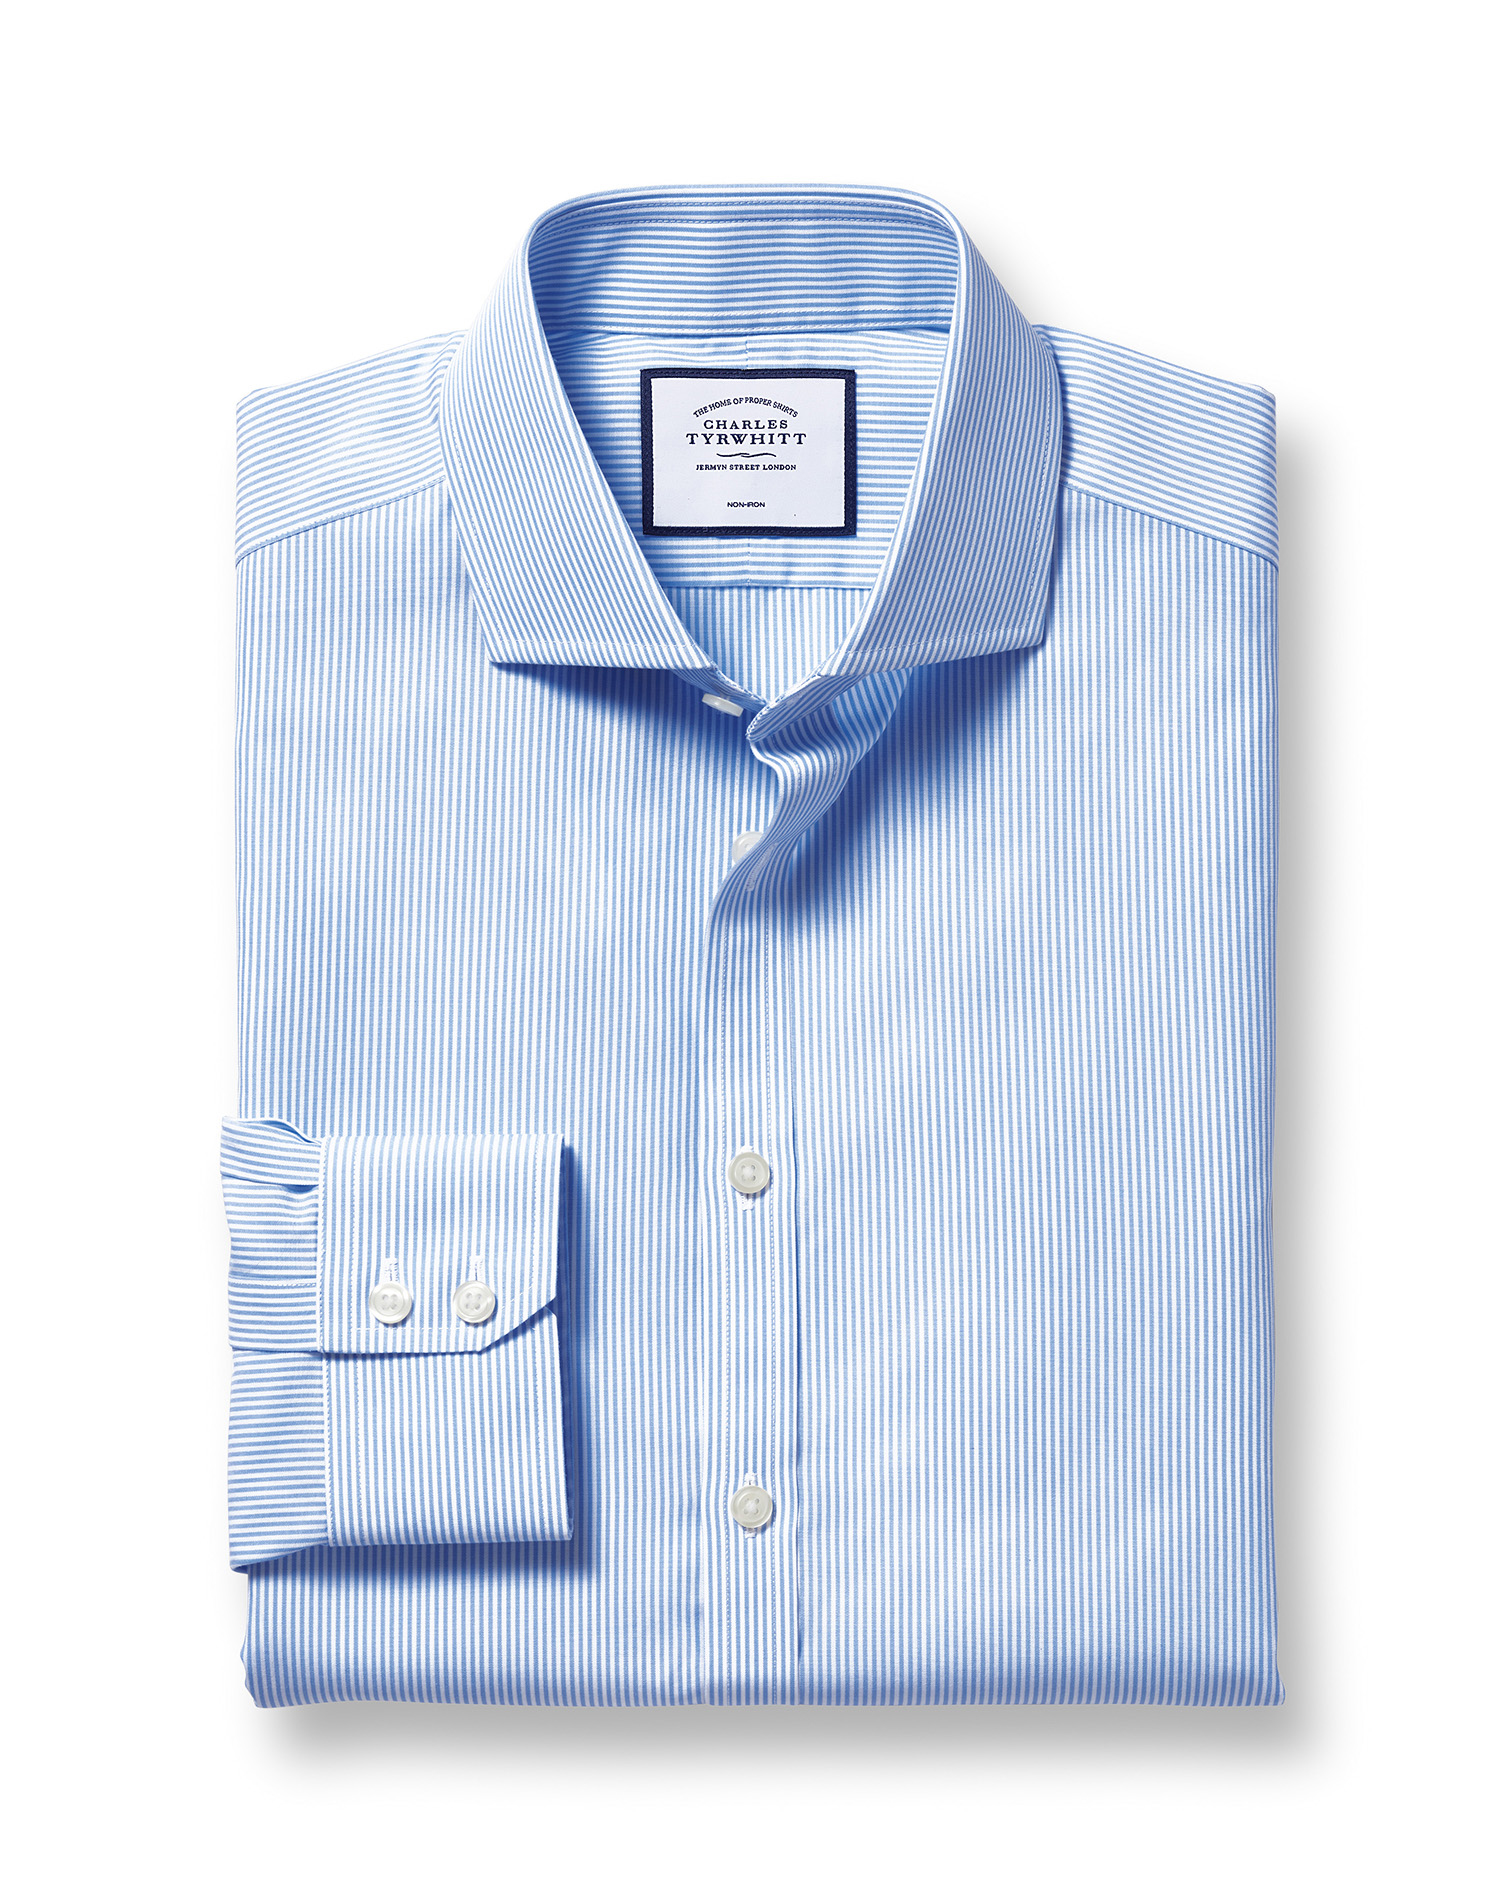 Slim Fit Non-Iron Cutaway Sky Blue Bengal Stripe Cotton Formal Shirt Single Cuff Size 15.5/36 by Cha